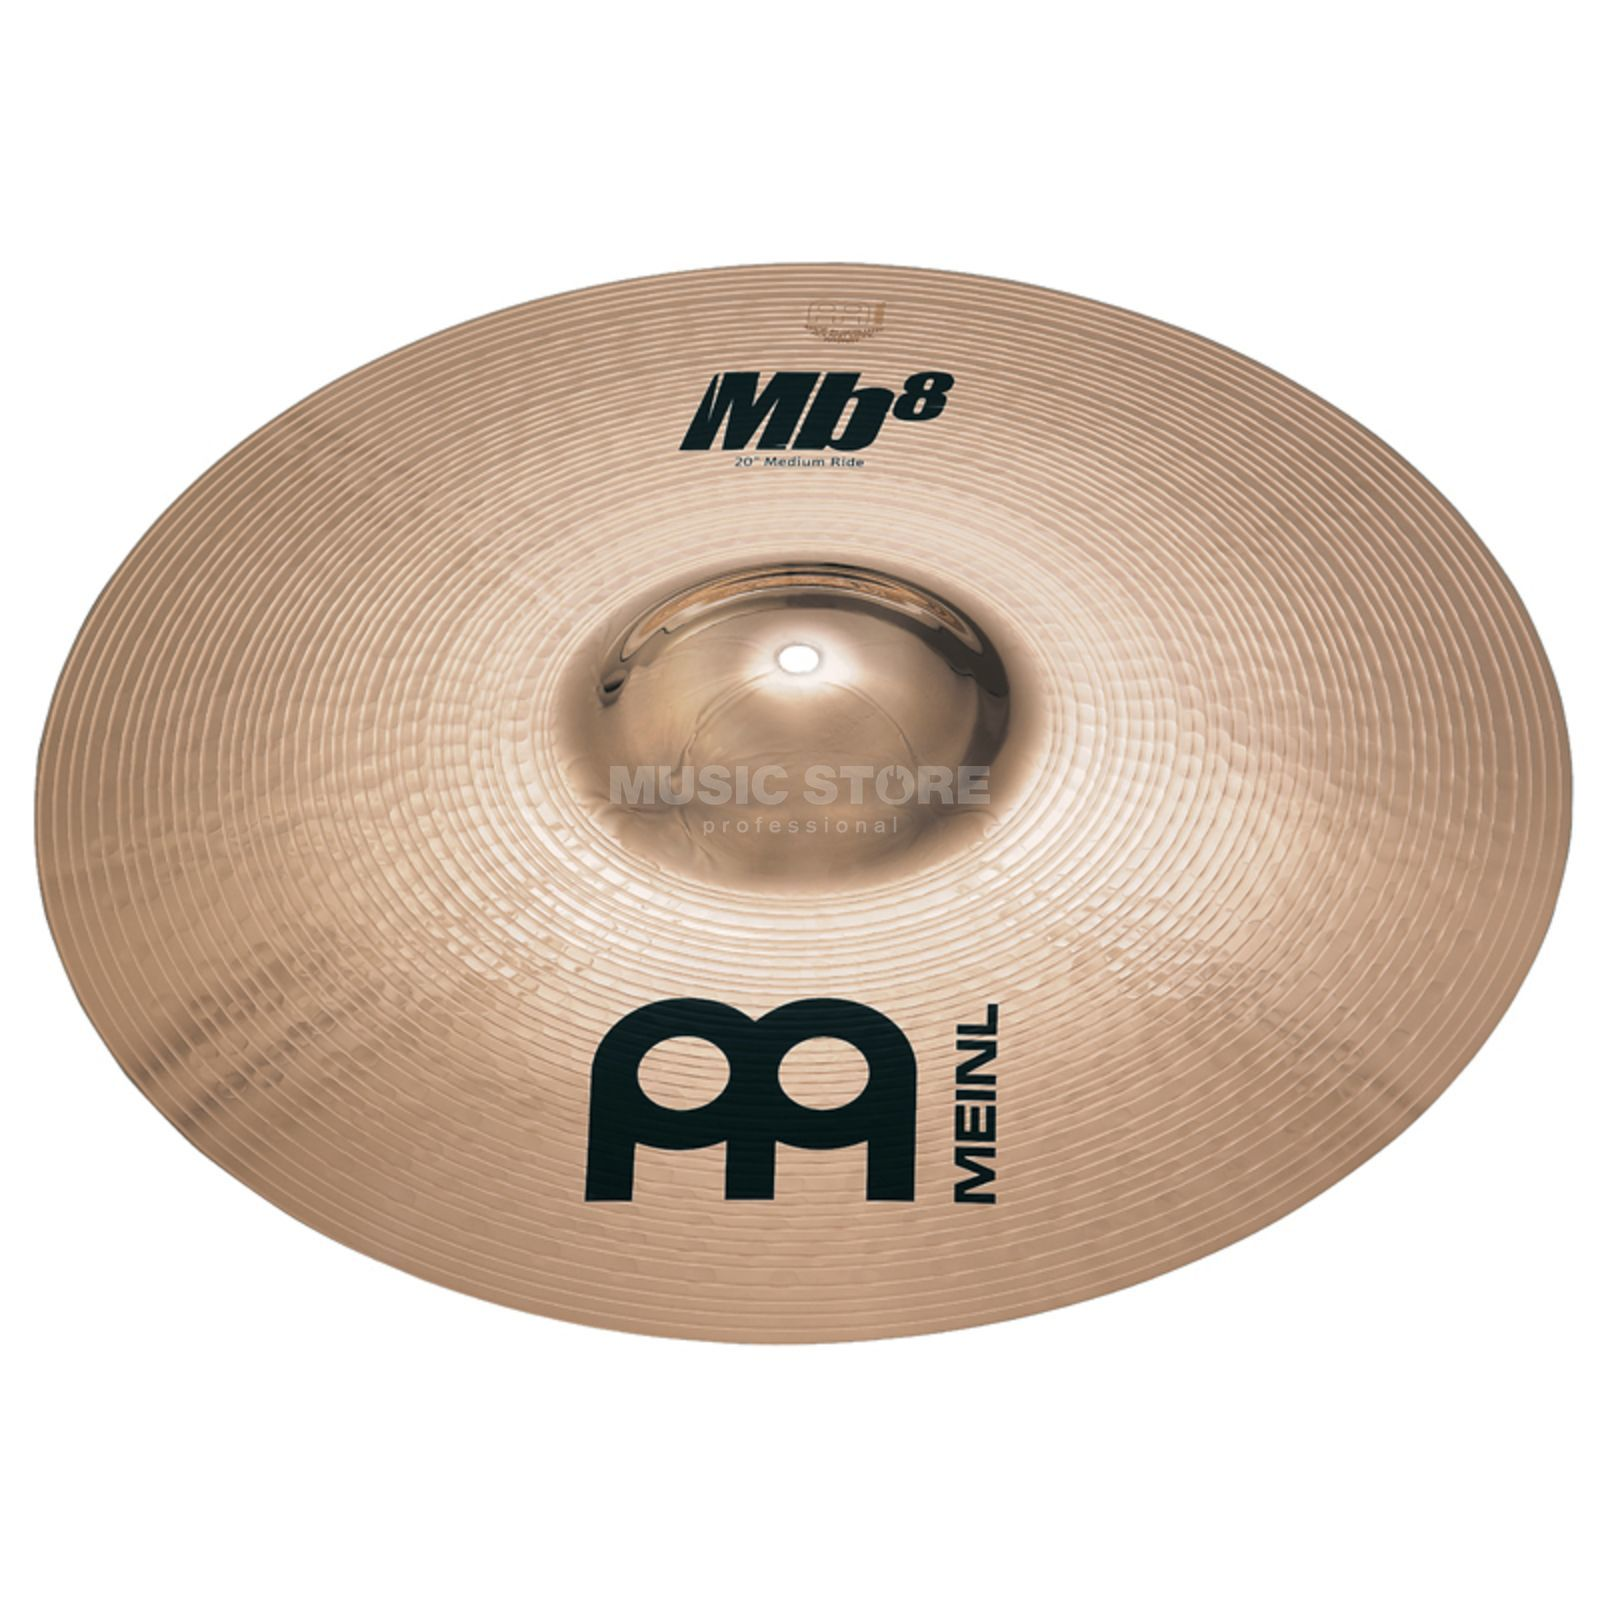 "Meinl MB8 Heavy Ride 22"", MB8-22HR-B, Brilliant Finish Produktbild"